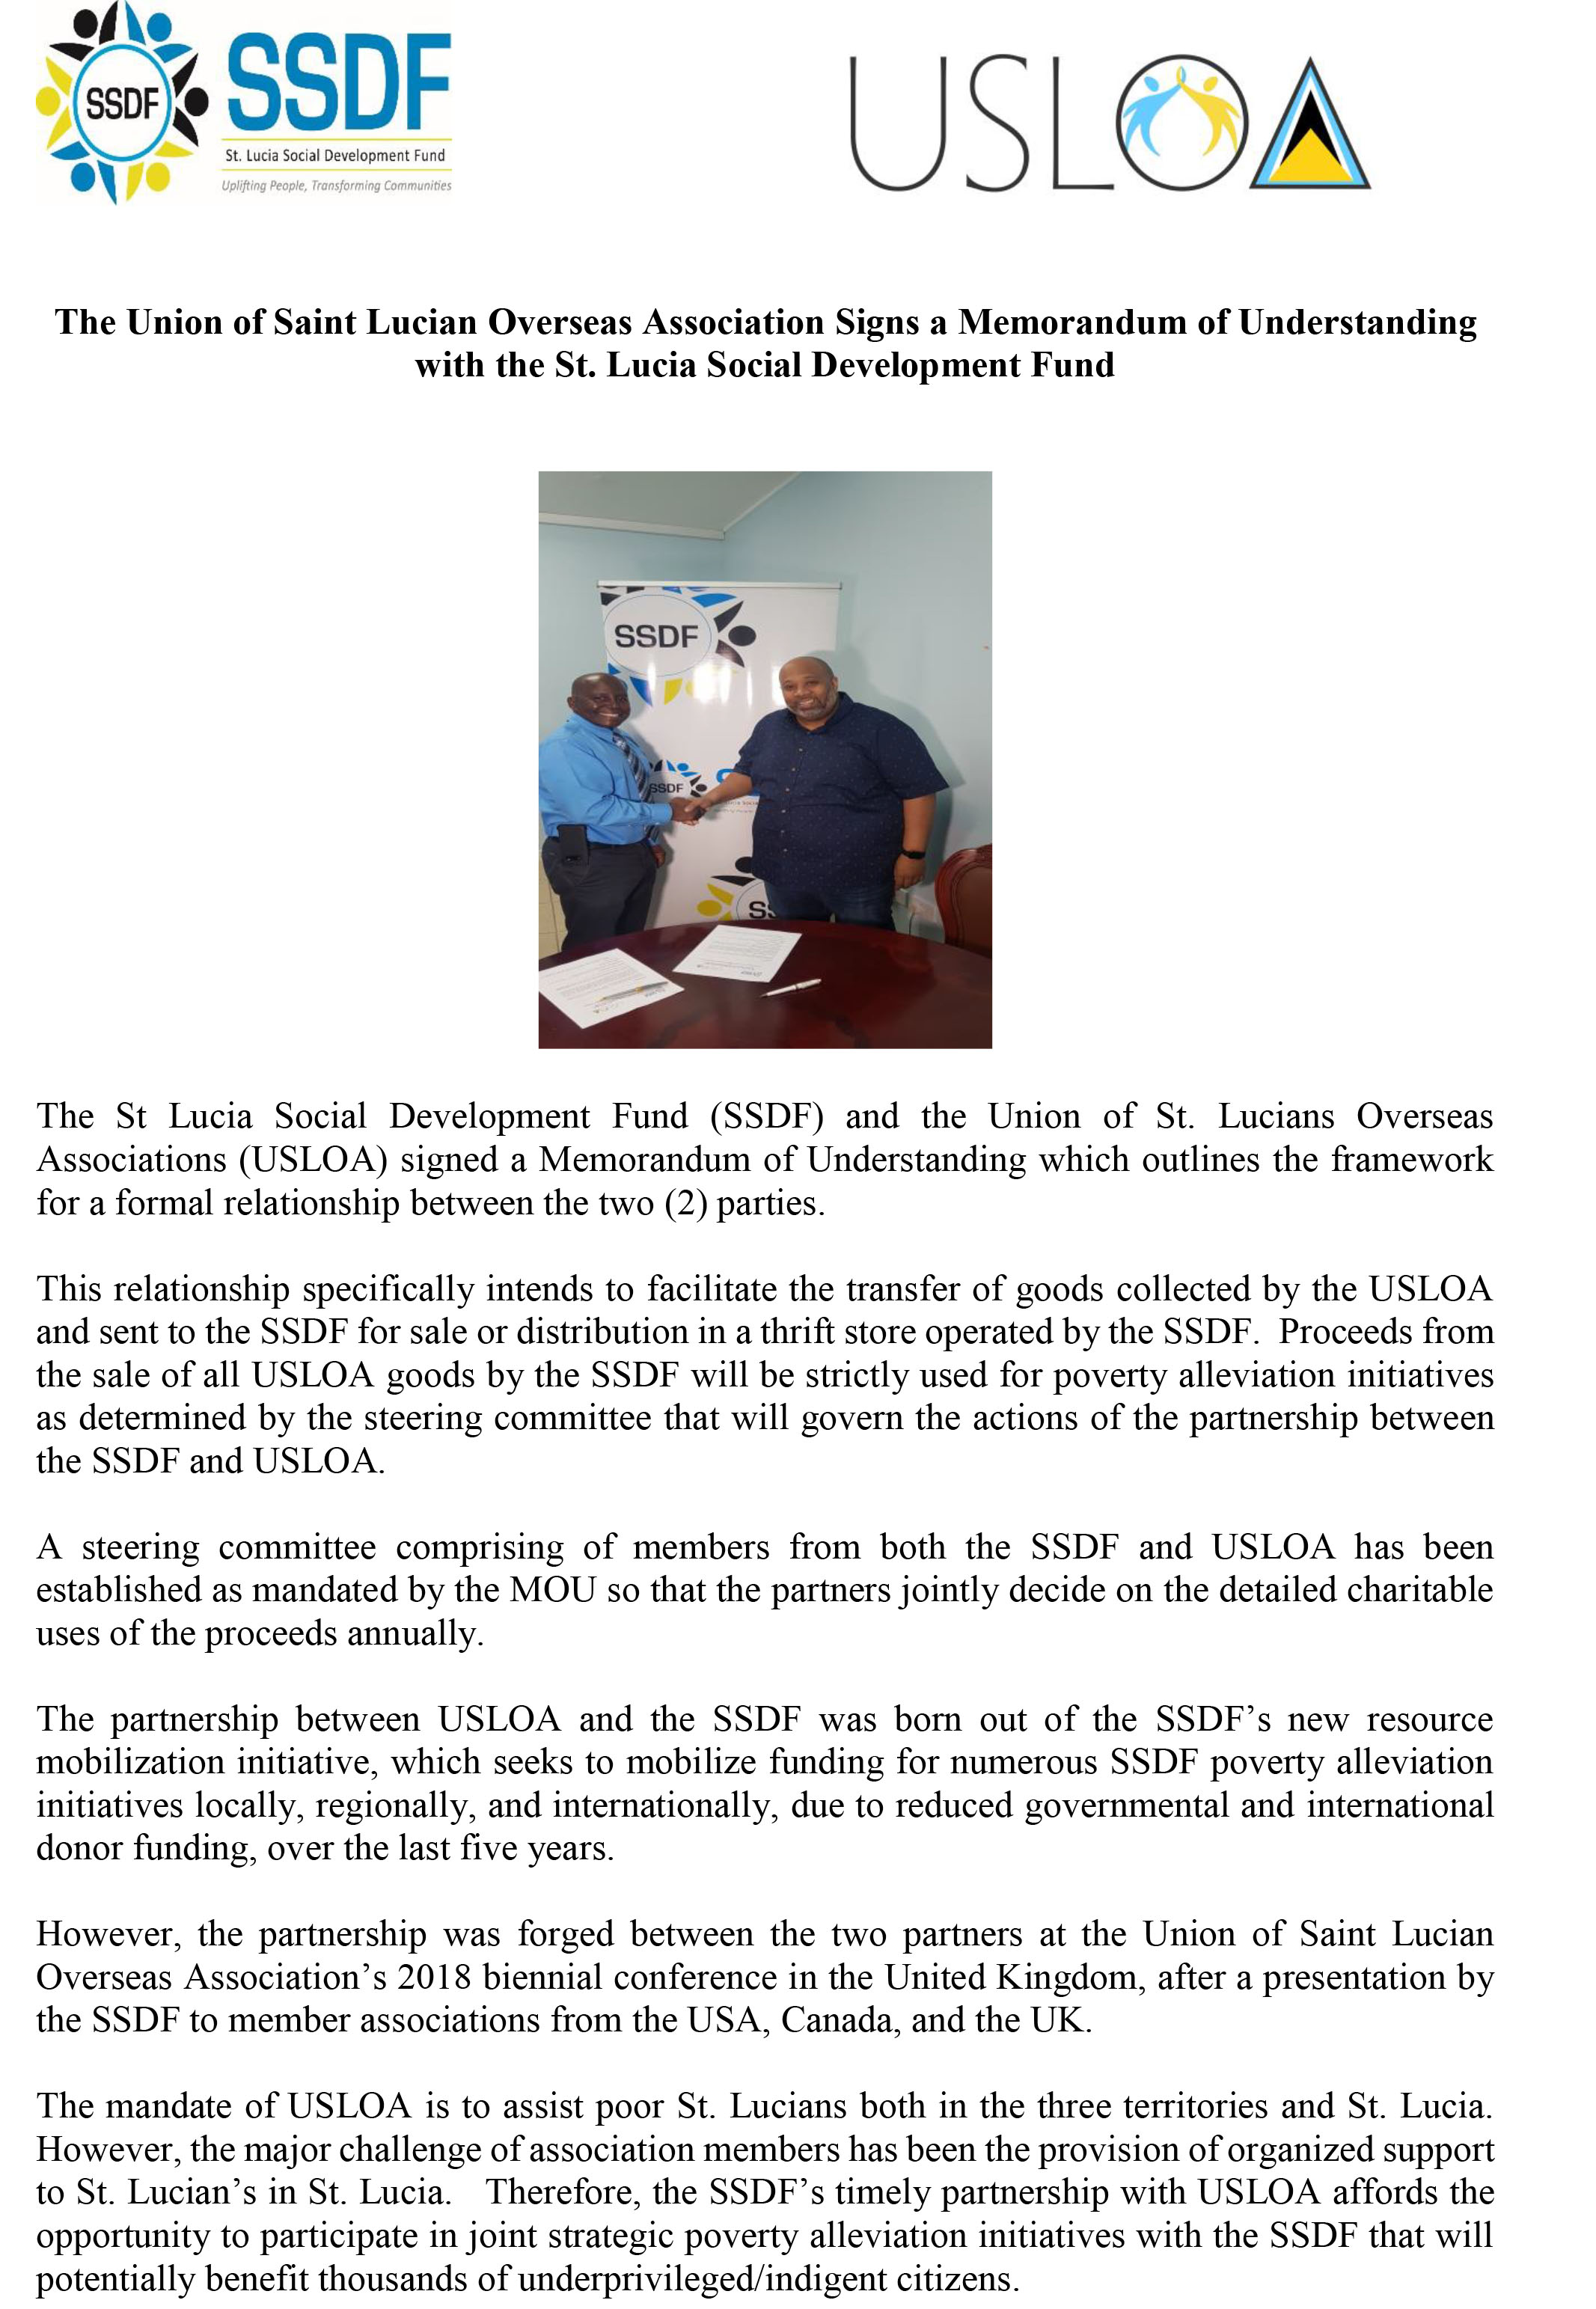 Press Release Signing of MOU with USLOA